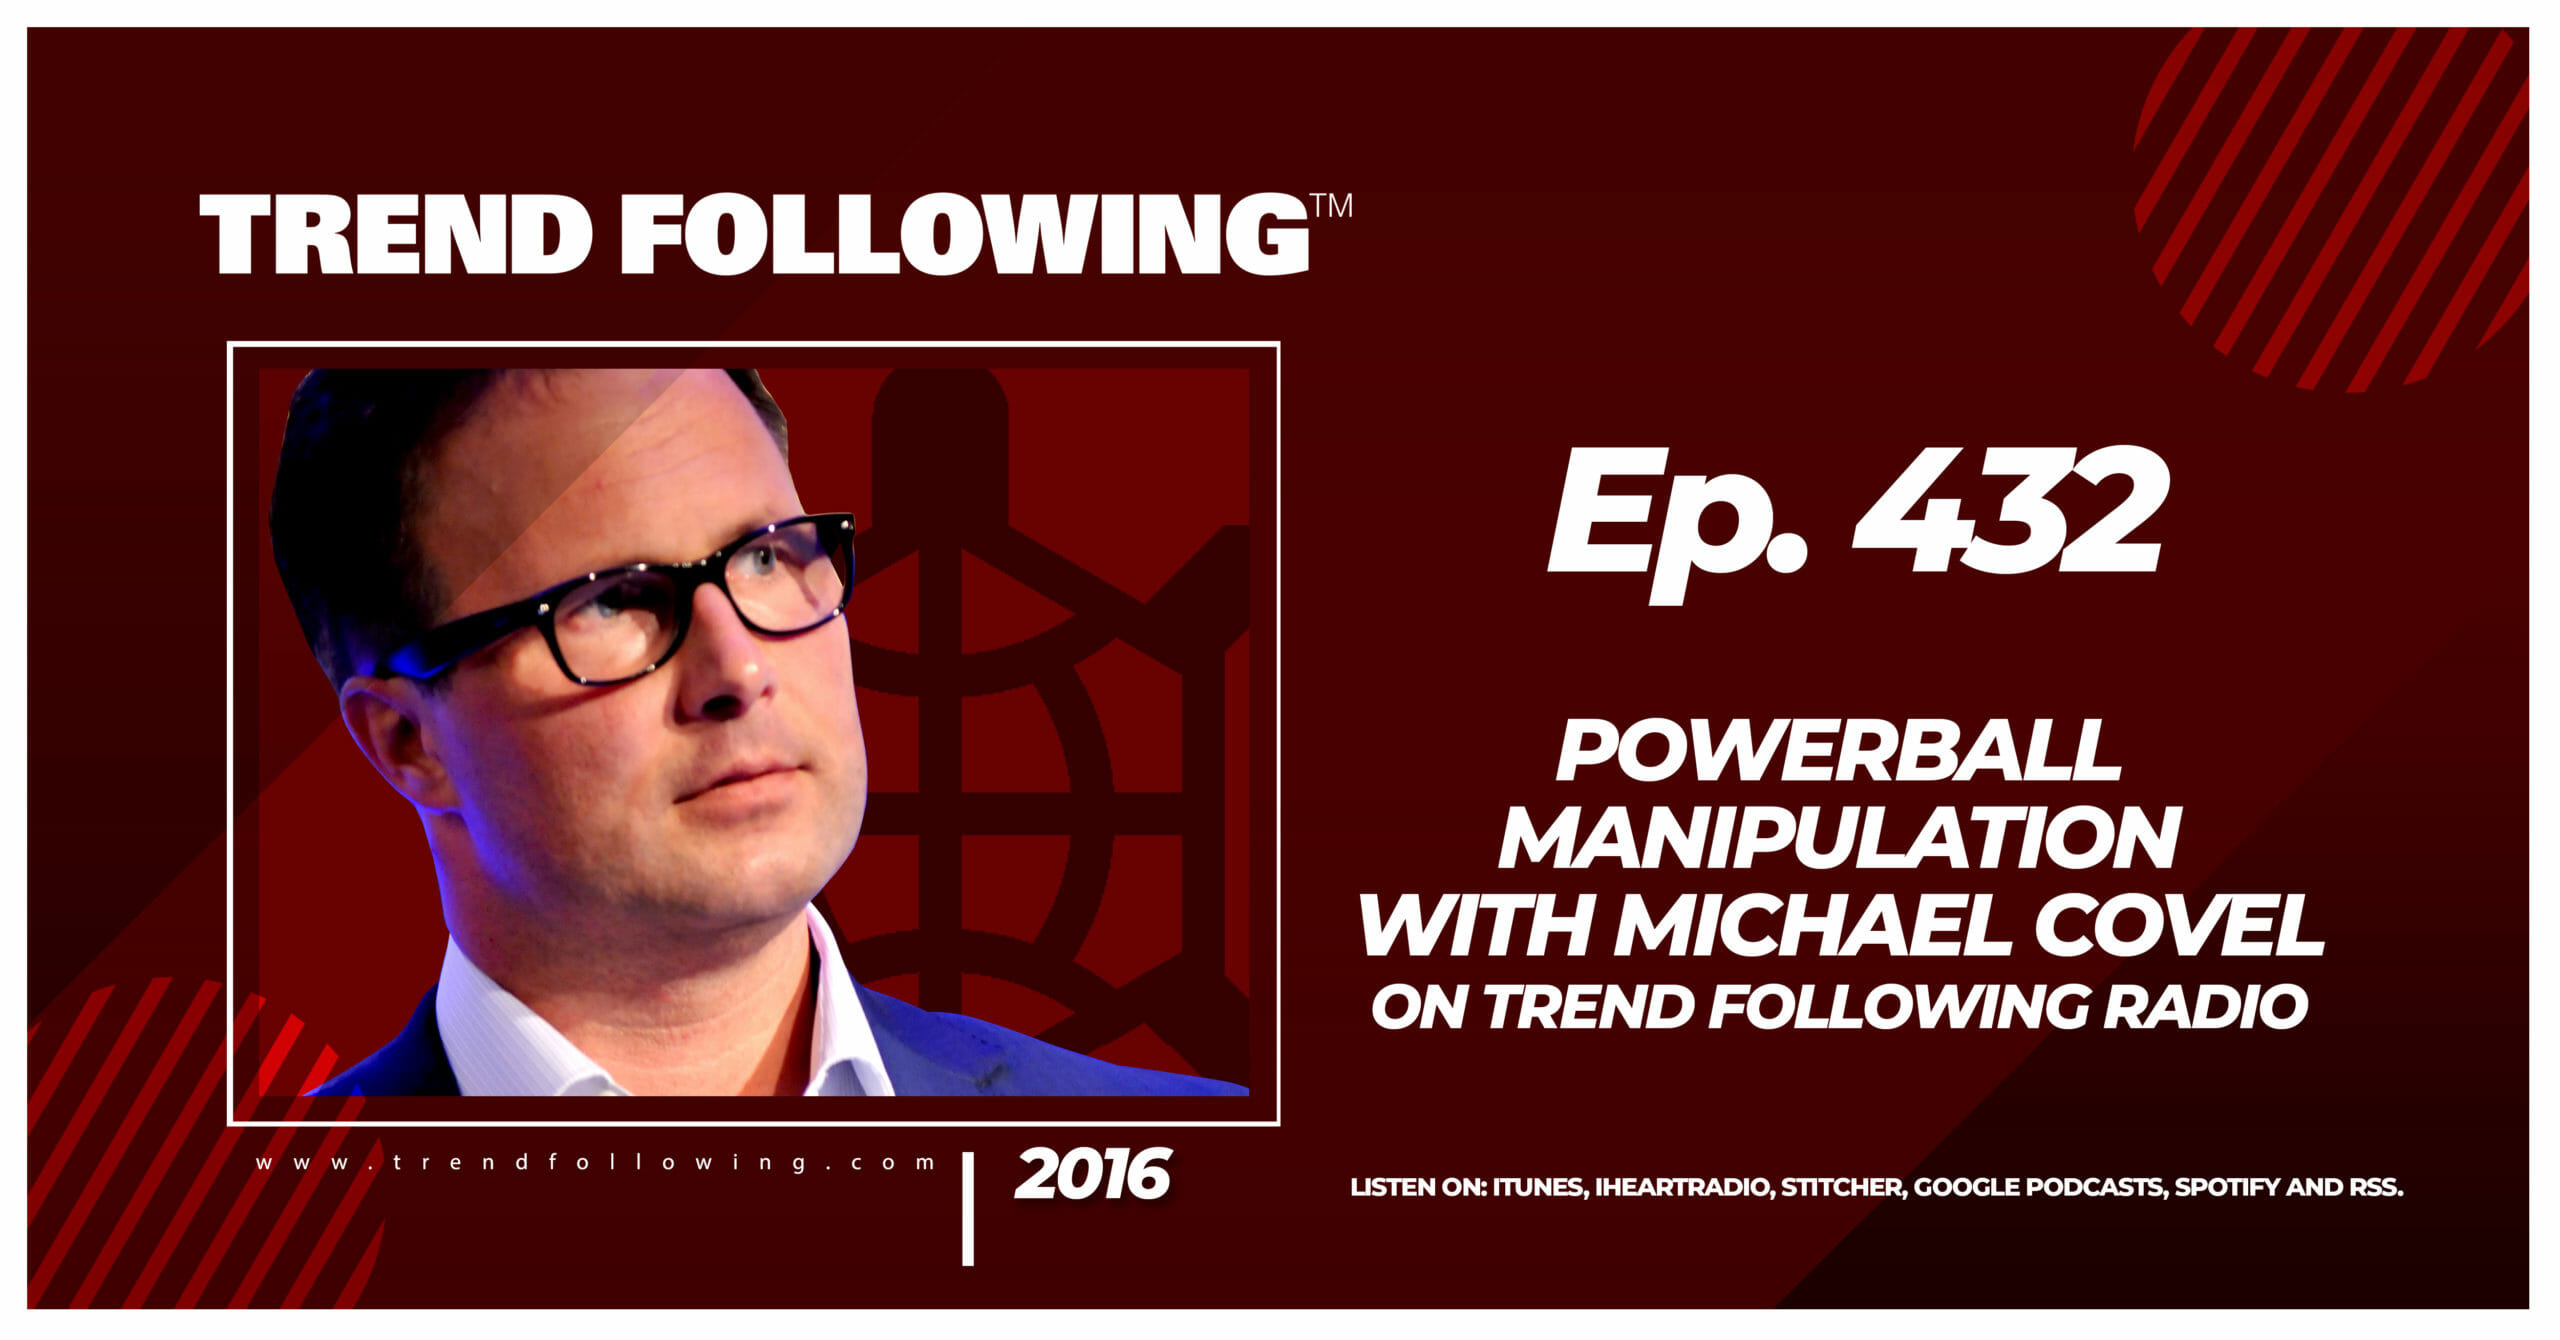 Powerball Manipulation with Michael Covel on Trend Following Radio